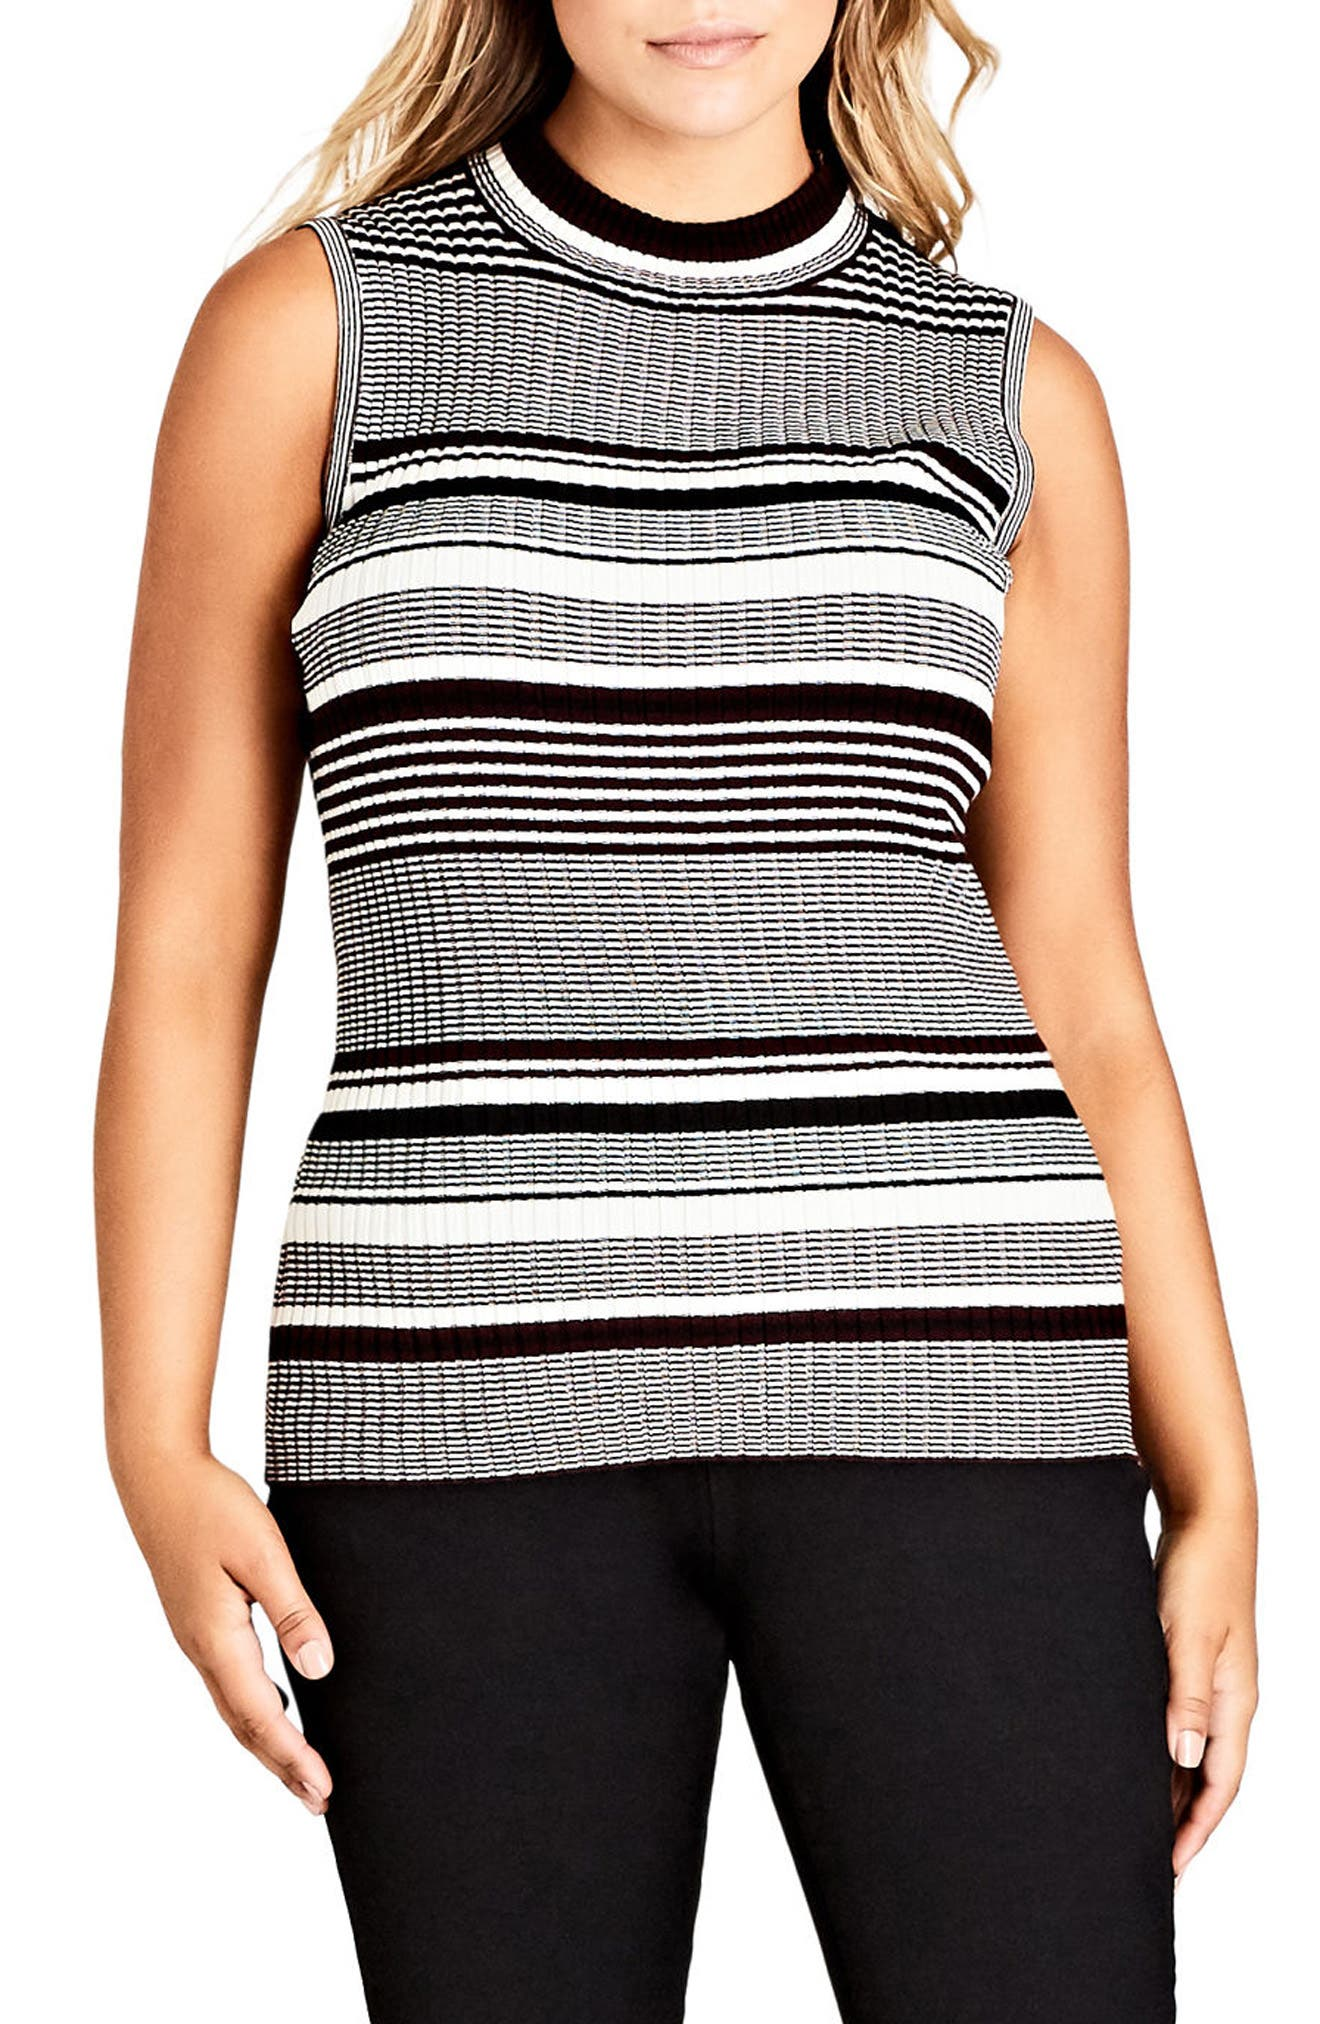 Alternate Image 1 Selected - Chic City Stripe Play Top (Plus Size)